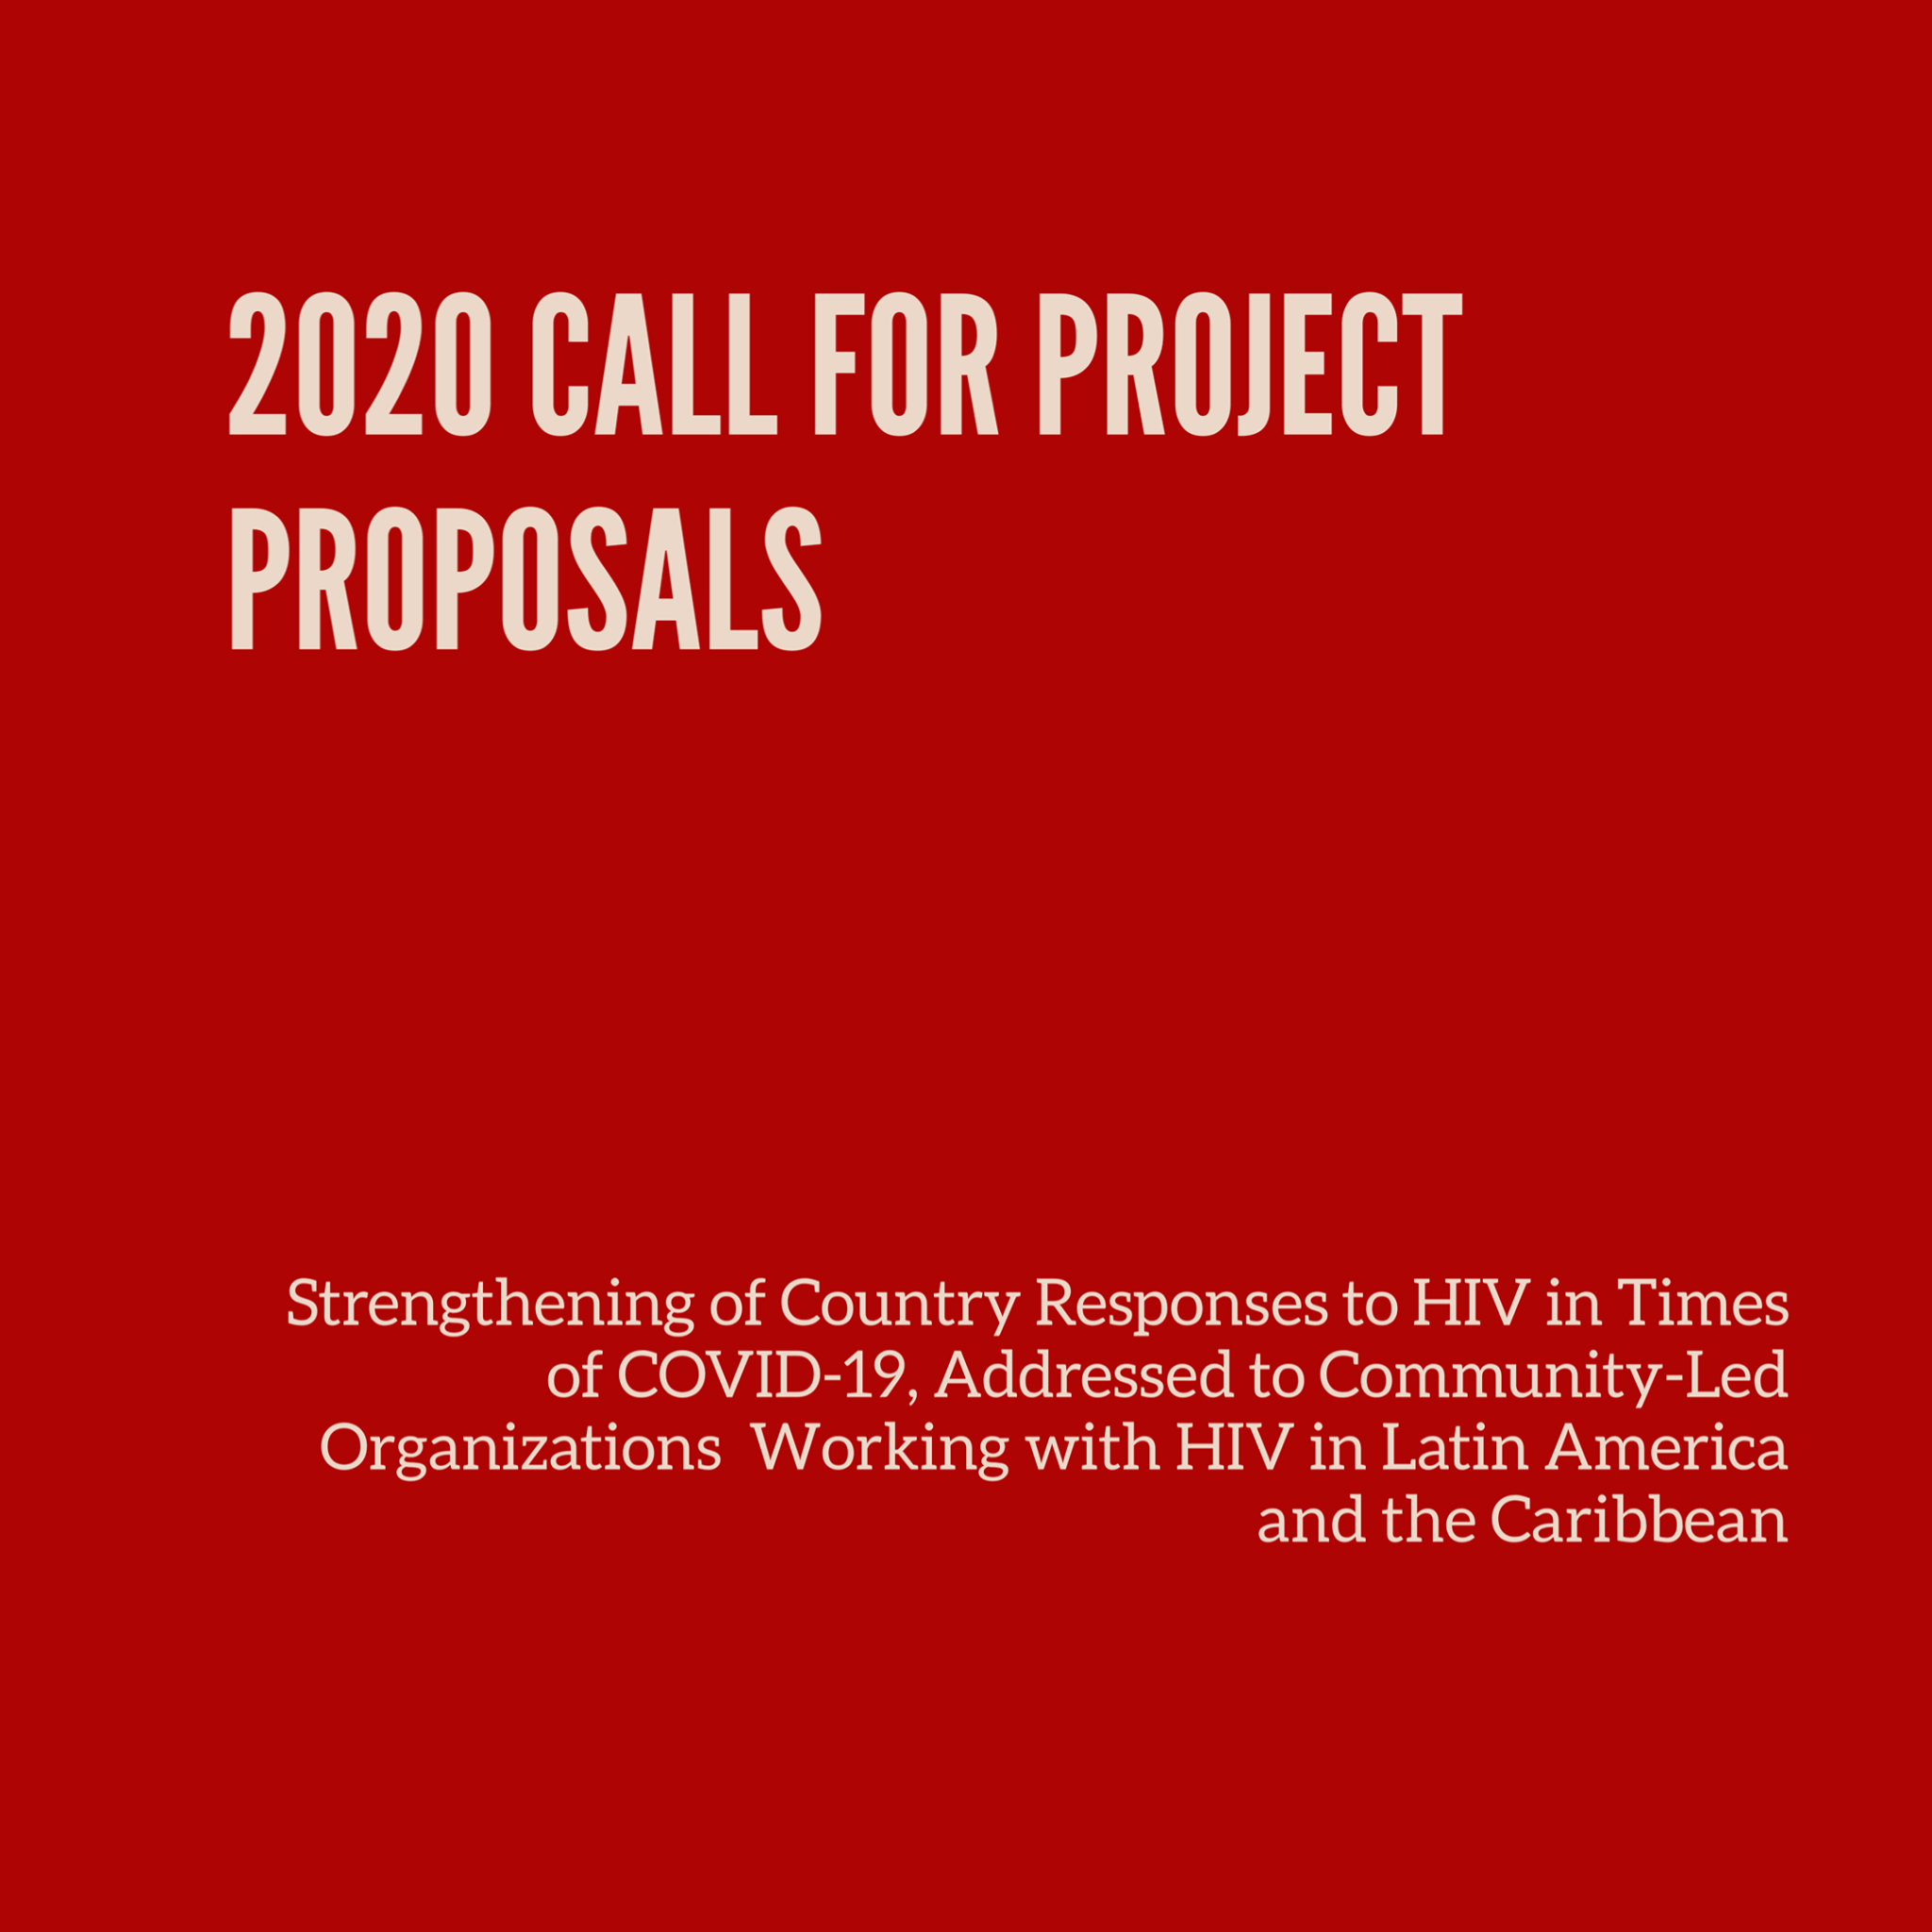 2020 UNAIDS Call for Project Proposals